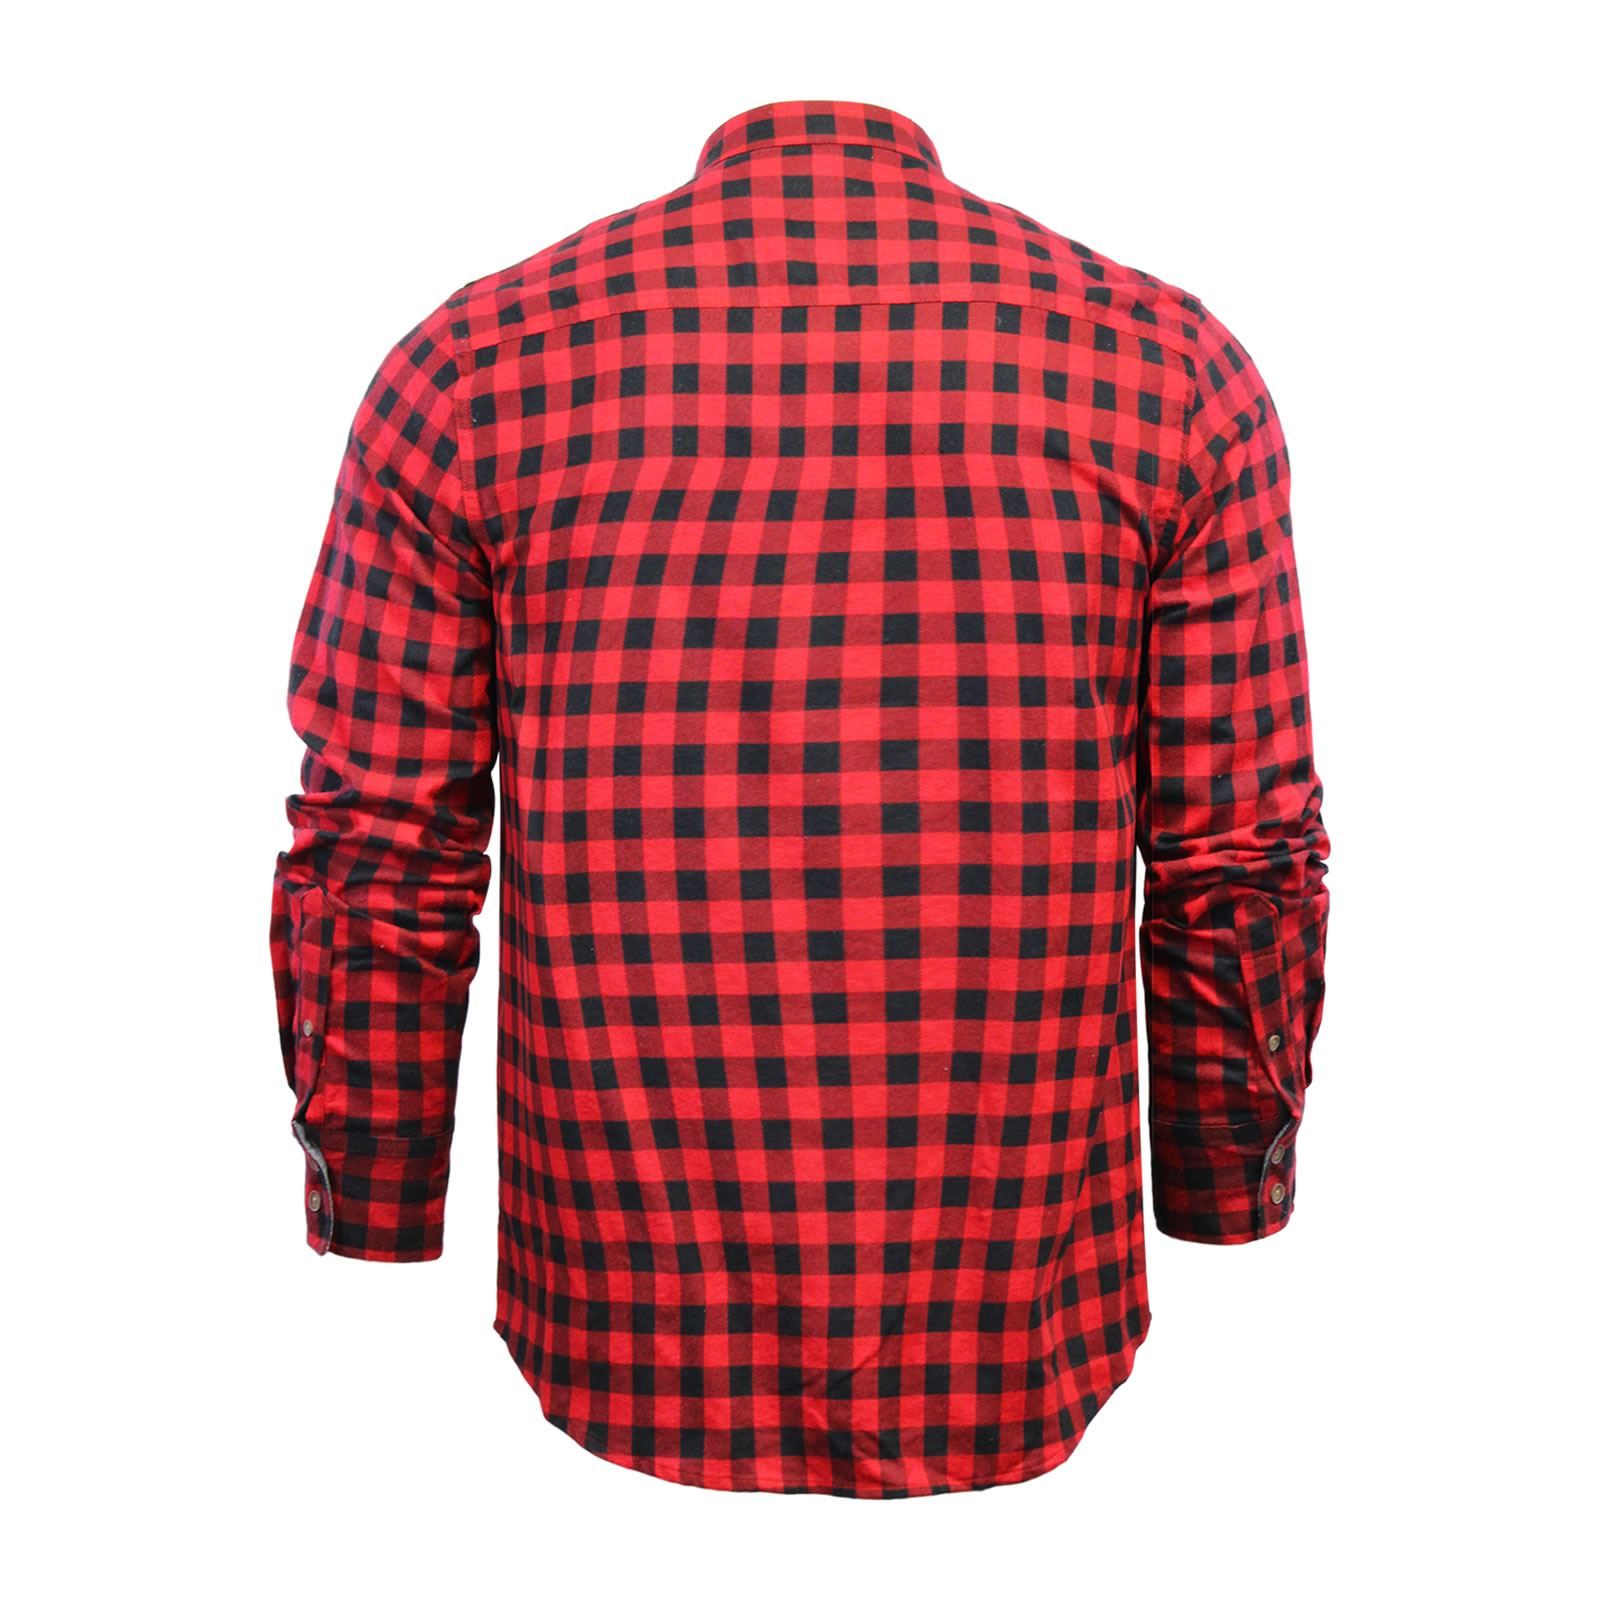 Mens-Check-Shirt-Brave-Soul-Flannel-Brushed-Cotton-Long-Sleeve-Casual-Top thumbnail 119